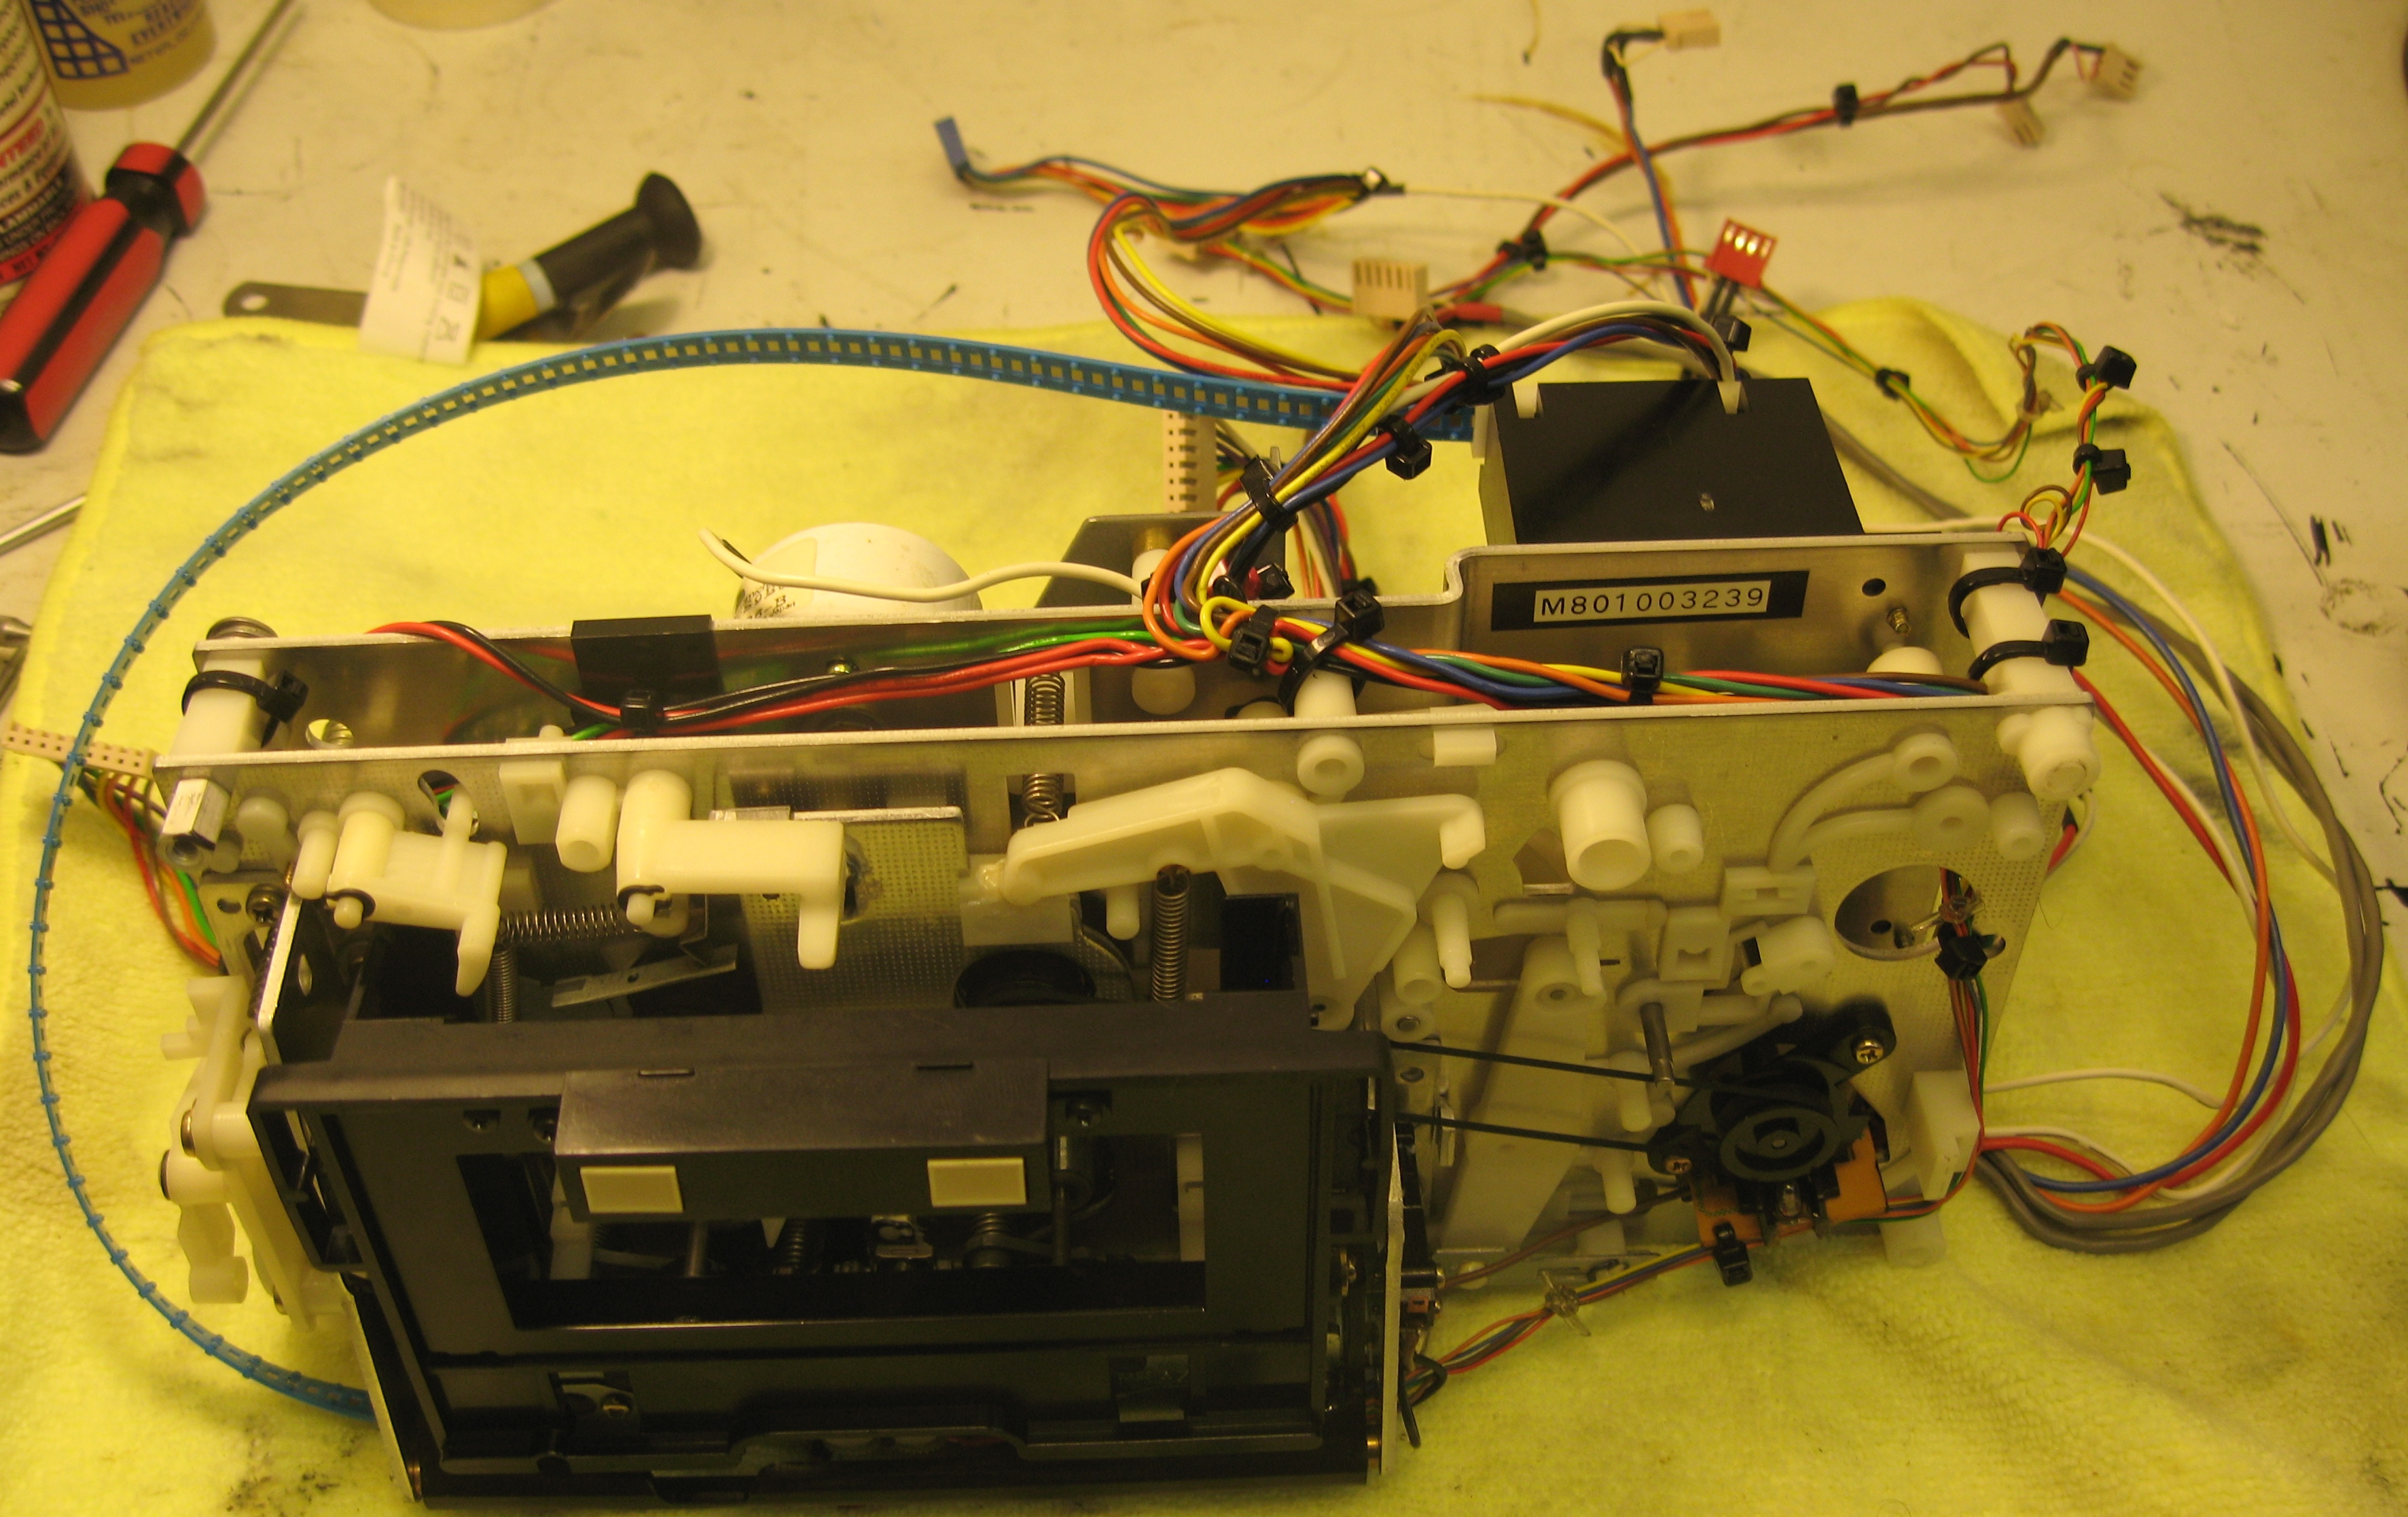 ... and wiring harness underneath frame. A lot of electronic components  packed into the inner frame of this deck, as is common for classic Nakamichi  decks!